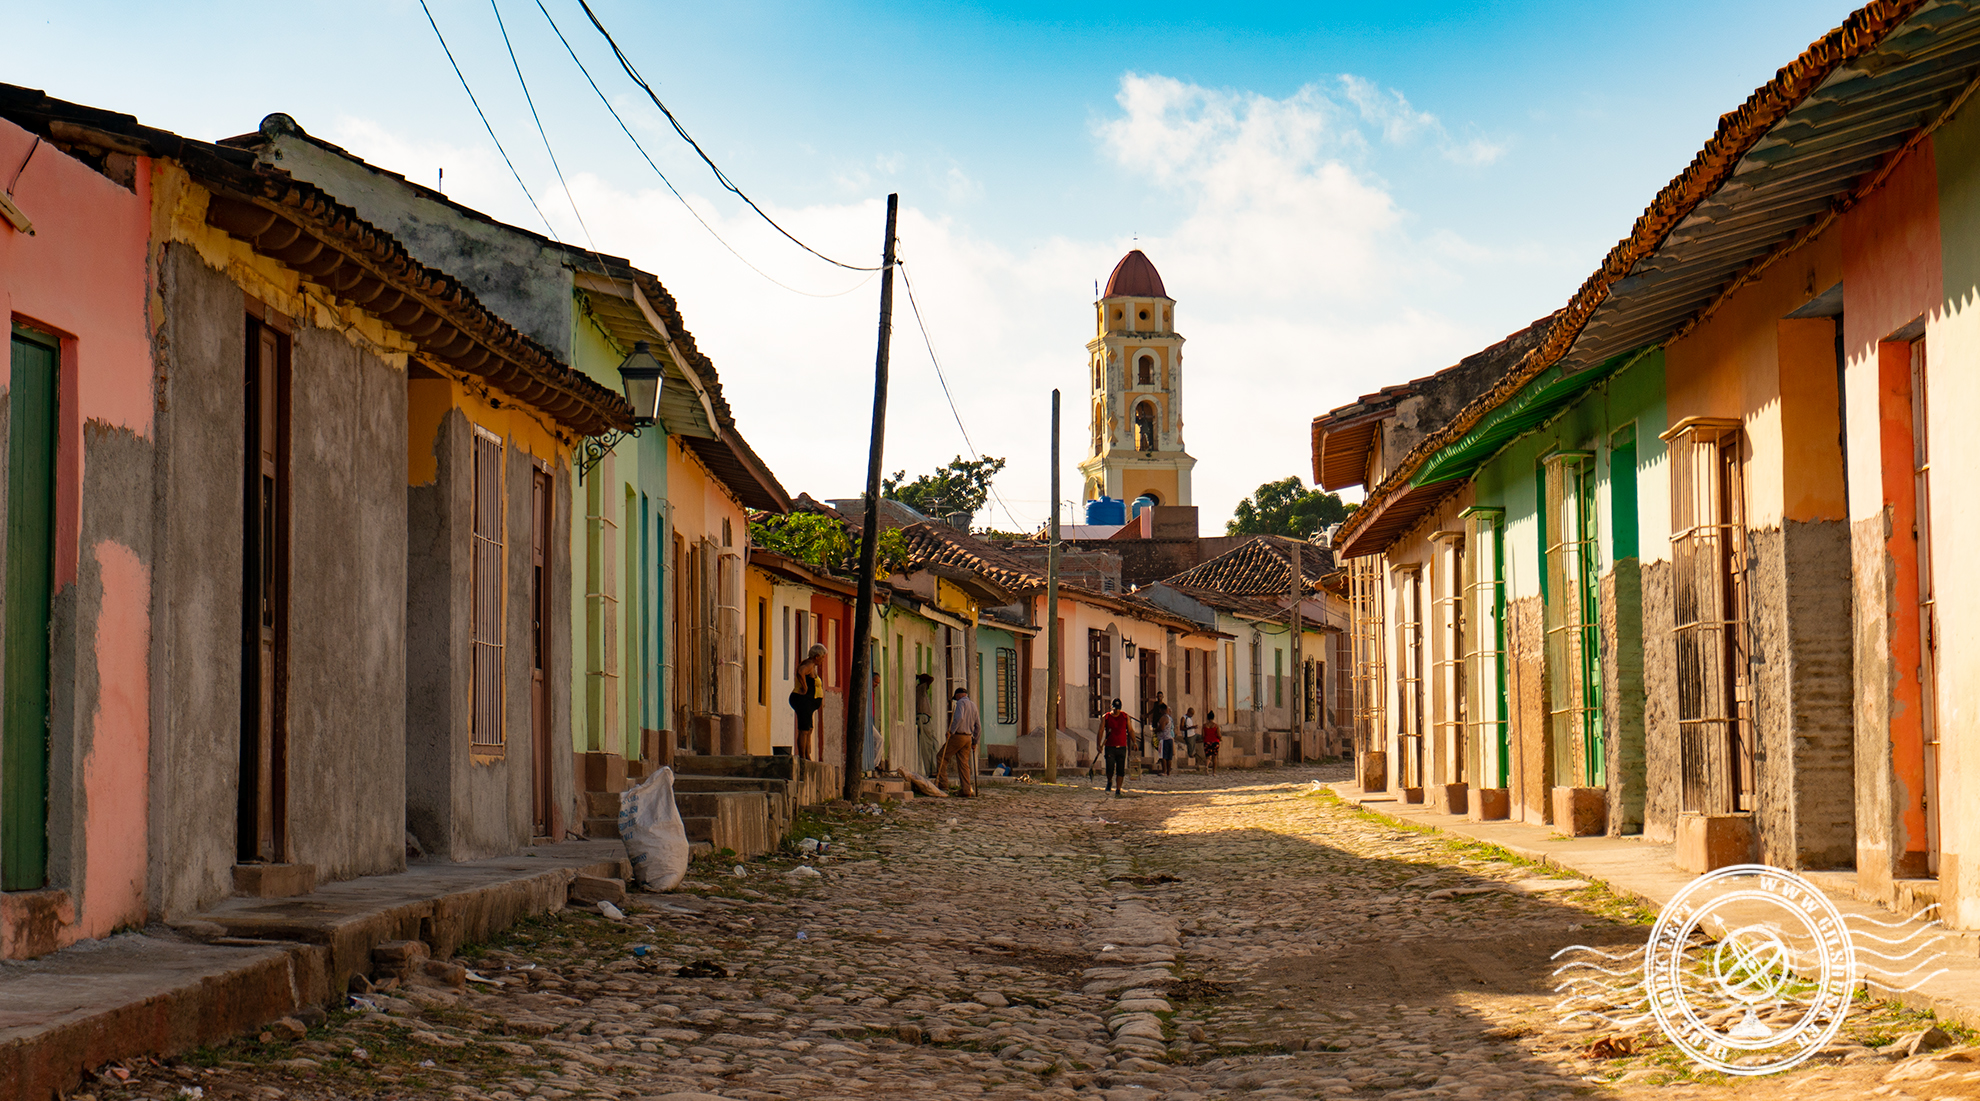 Old street in Trinidad